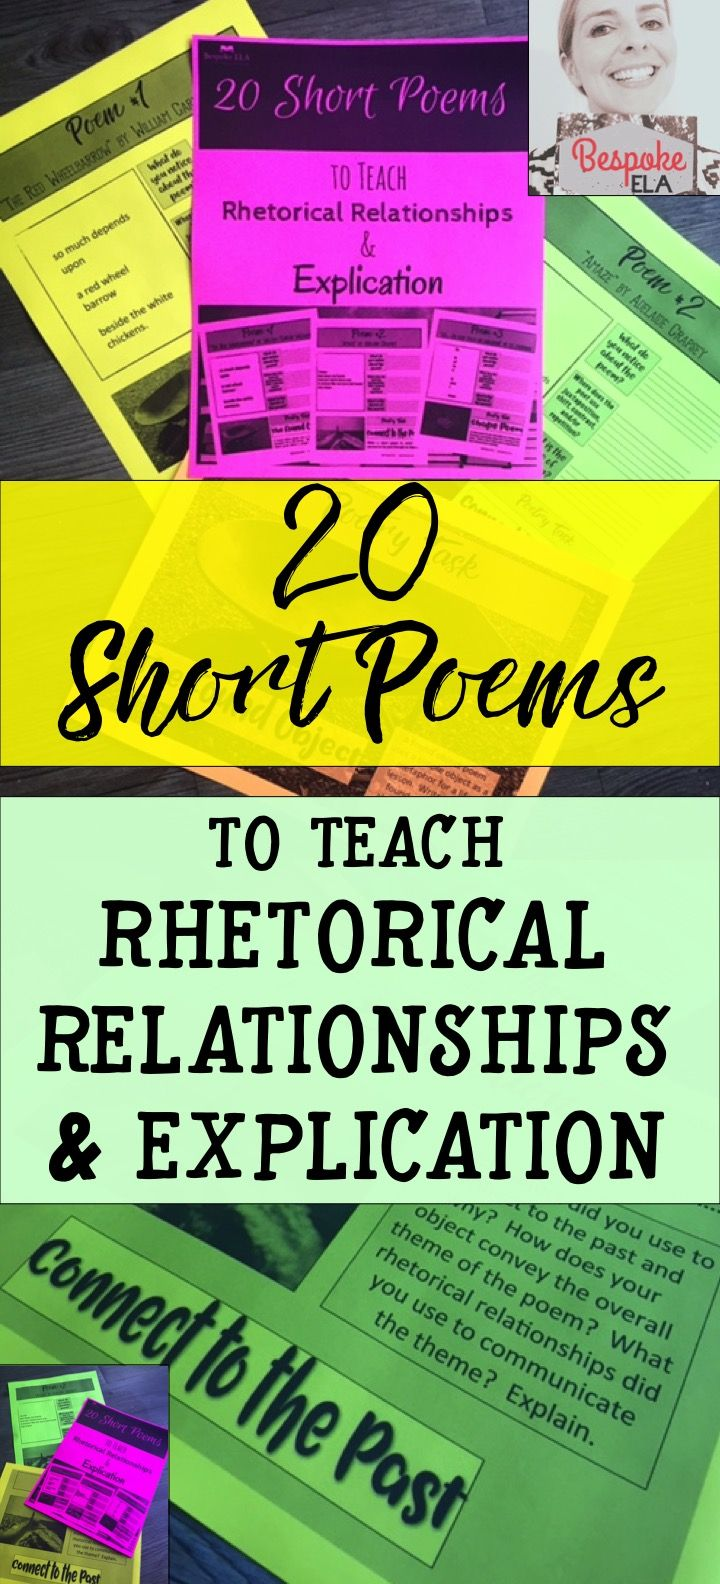 This product by Bespoke ELA contains 20 short poems to analyze for the four, basic rhetorical relationships: juxtaposition, contrast, shift, and repetition. For each poem, students will: 1. Make observations. 2. Identify and analyze the four rhetorical relationships. 3. Connect the rhetorical relationships to THEME. 4. Write their own original poems inspired by the model poem. 5. Write an explication of their original poems. Excellent for English Language Arts in grades 8-12.